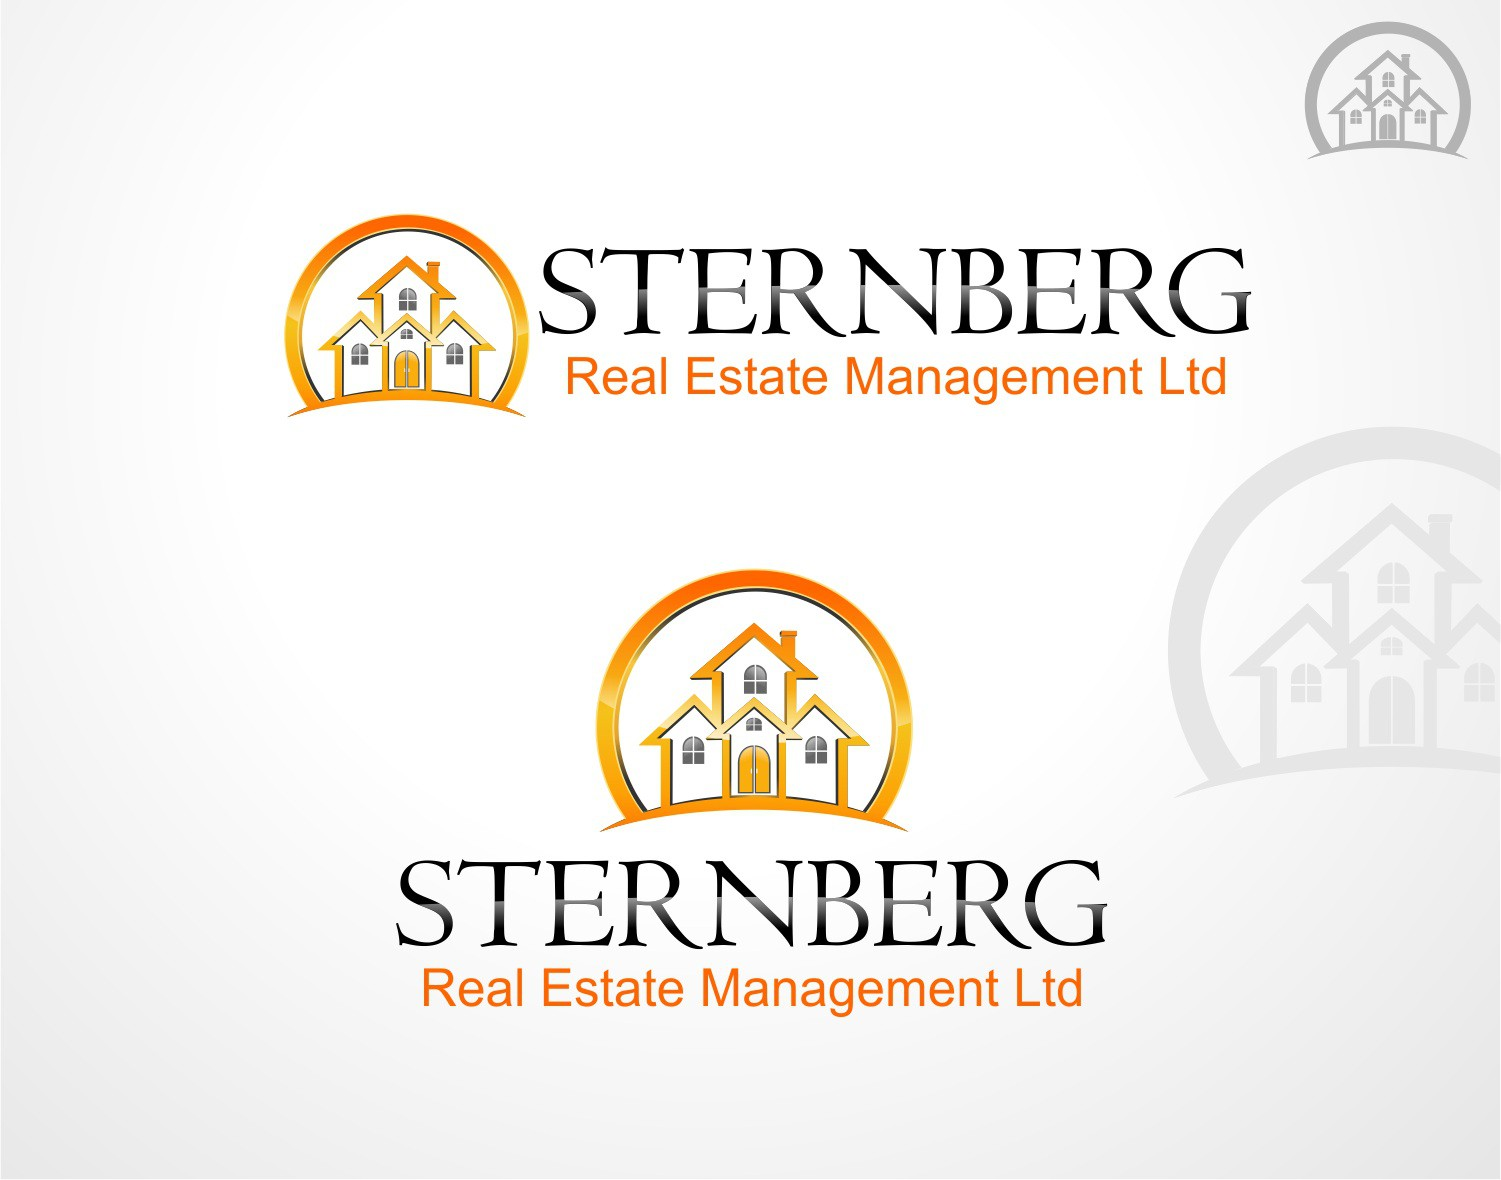 logo for STERNBERG Real Estate Management Ltd